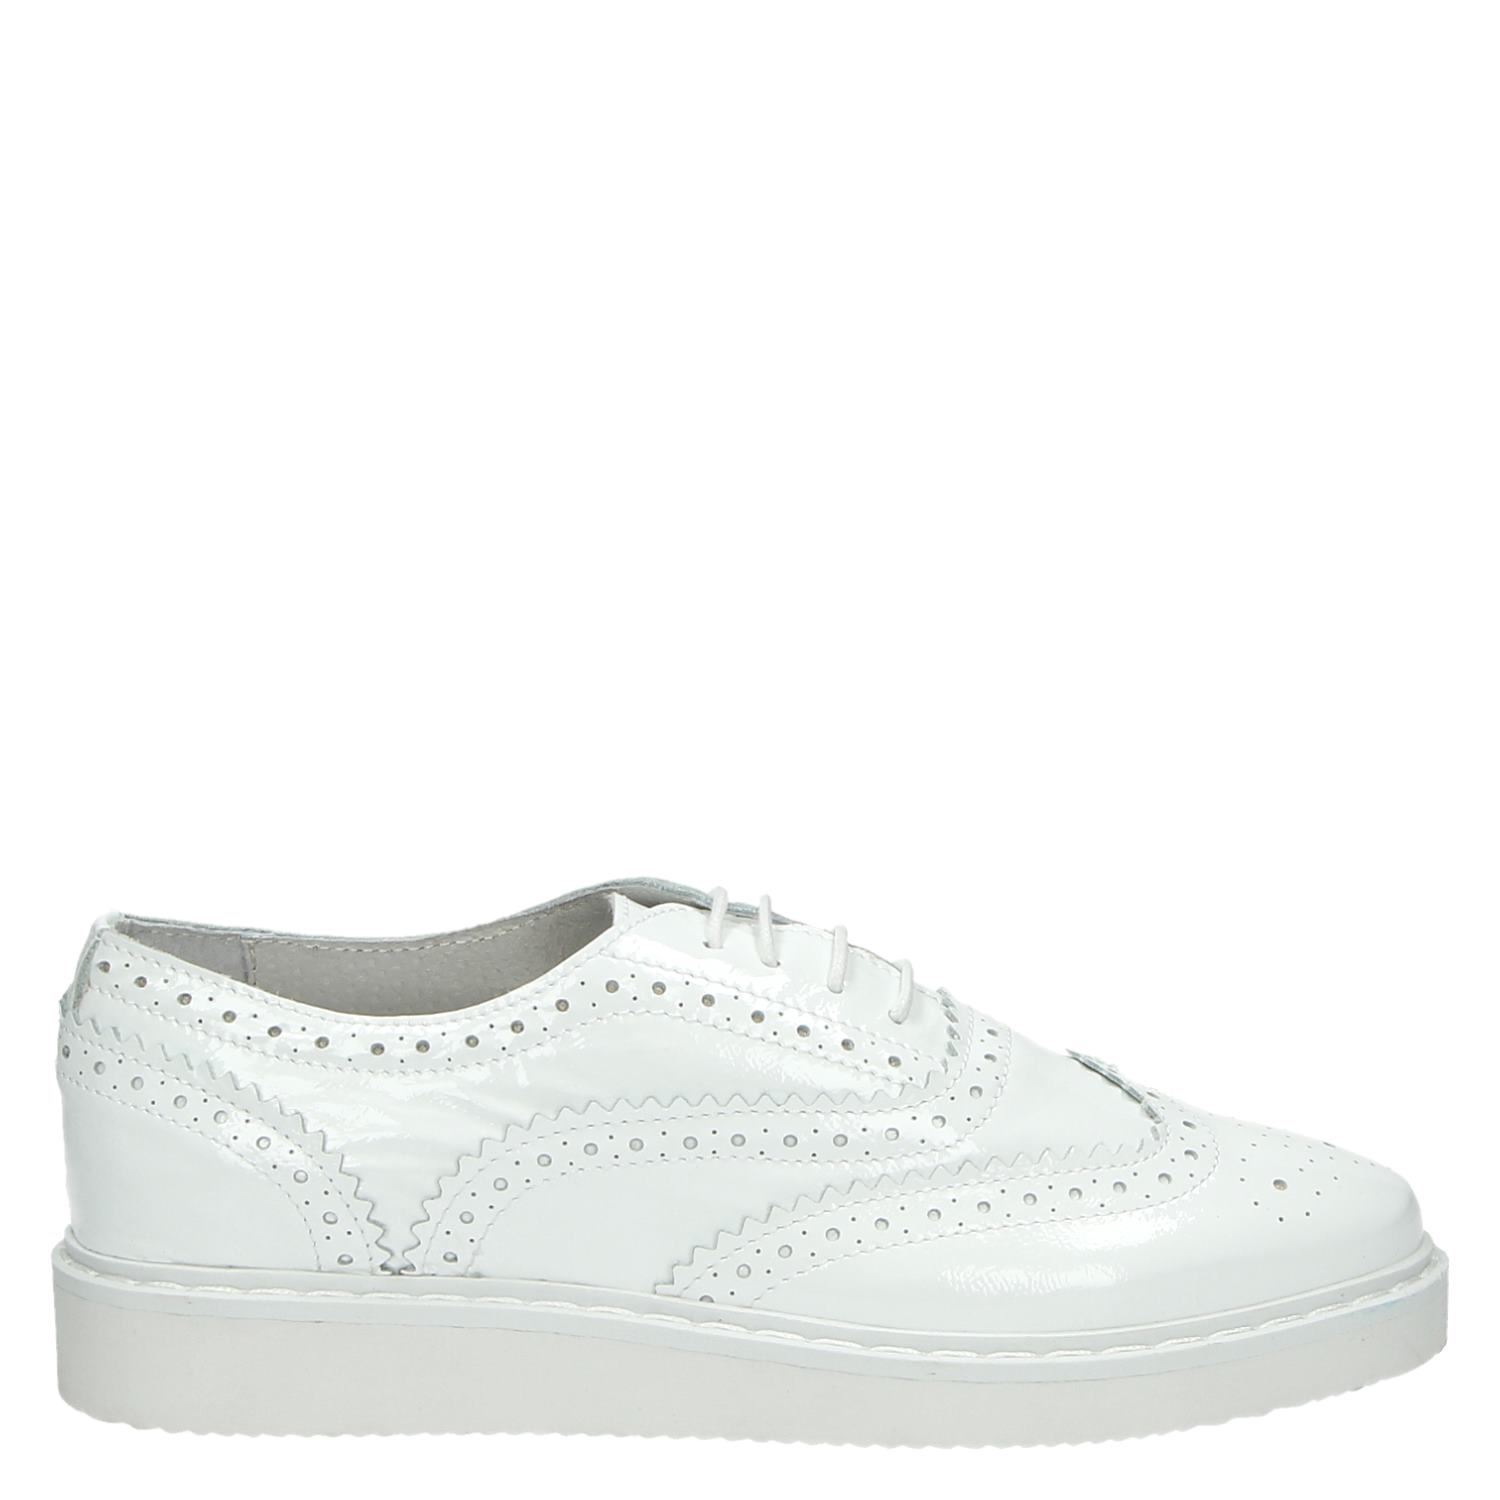 Chaussures Poelman Ps Blanc h2LsdfpS